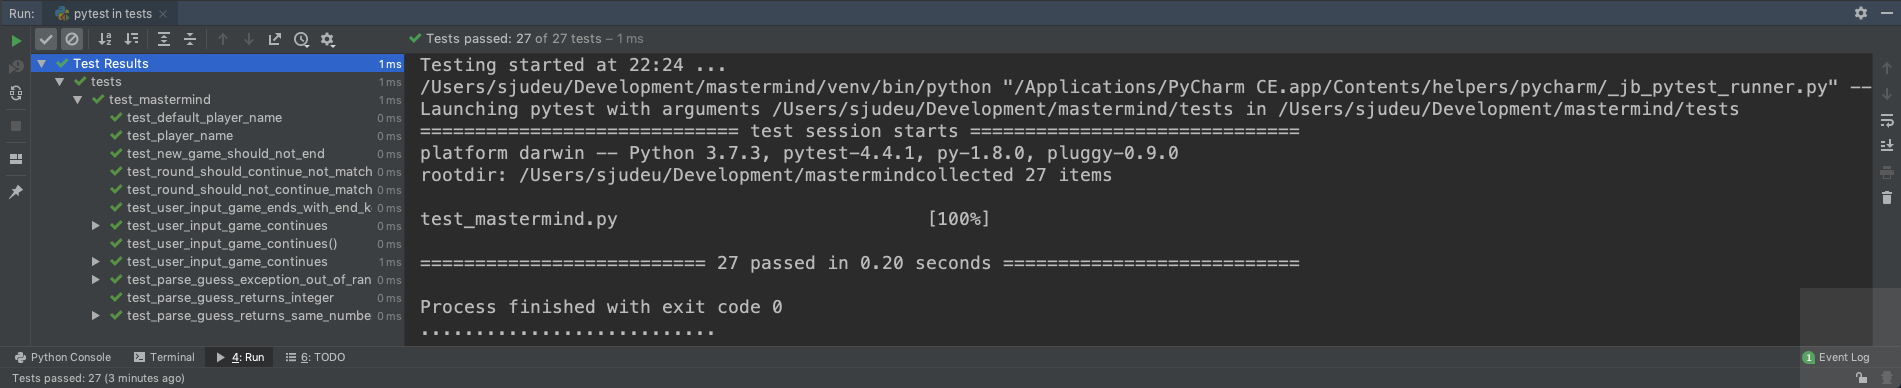 testmon - finding bugs 10x faster